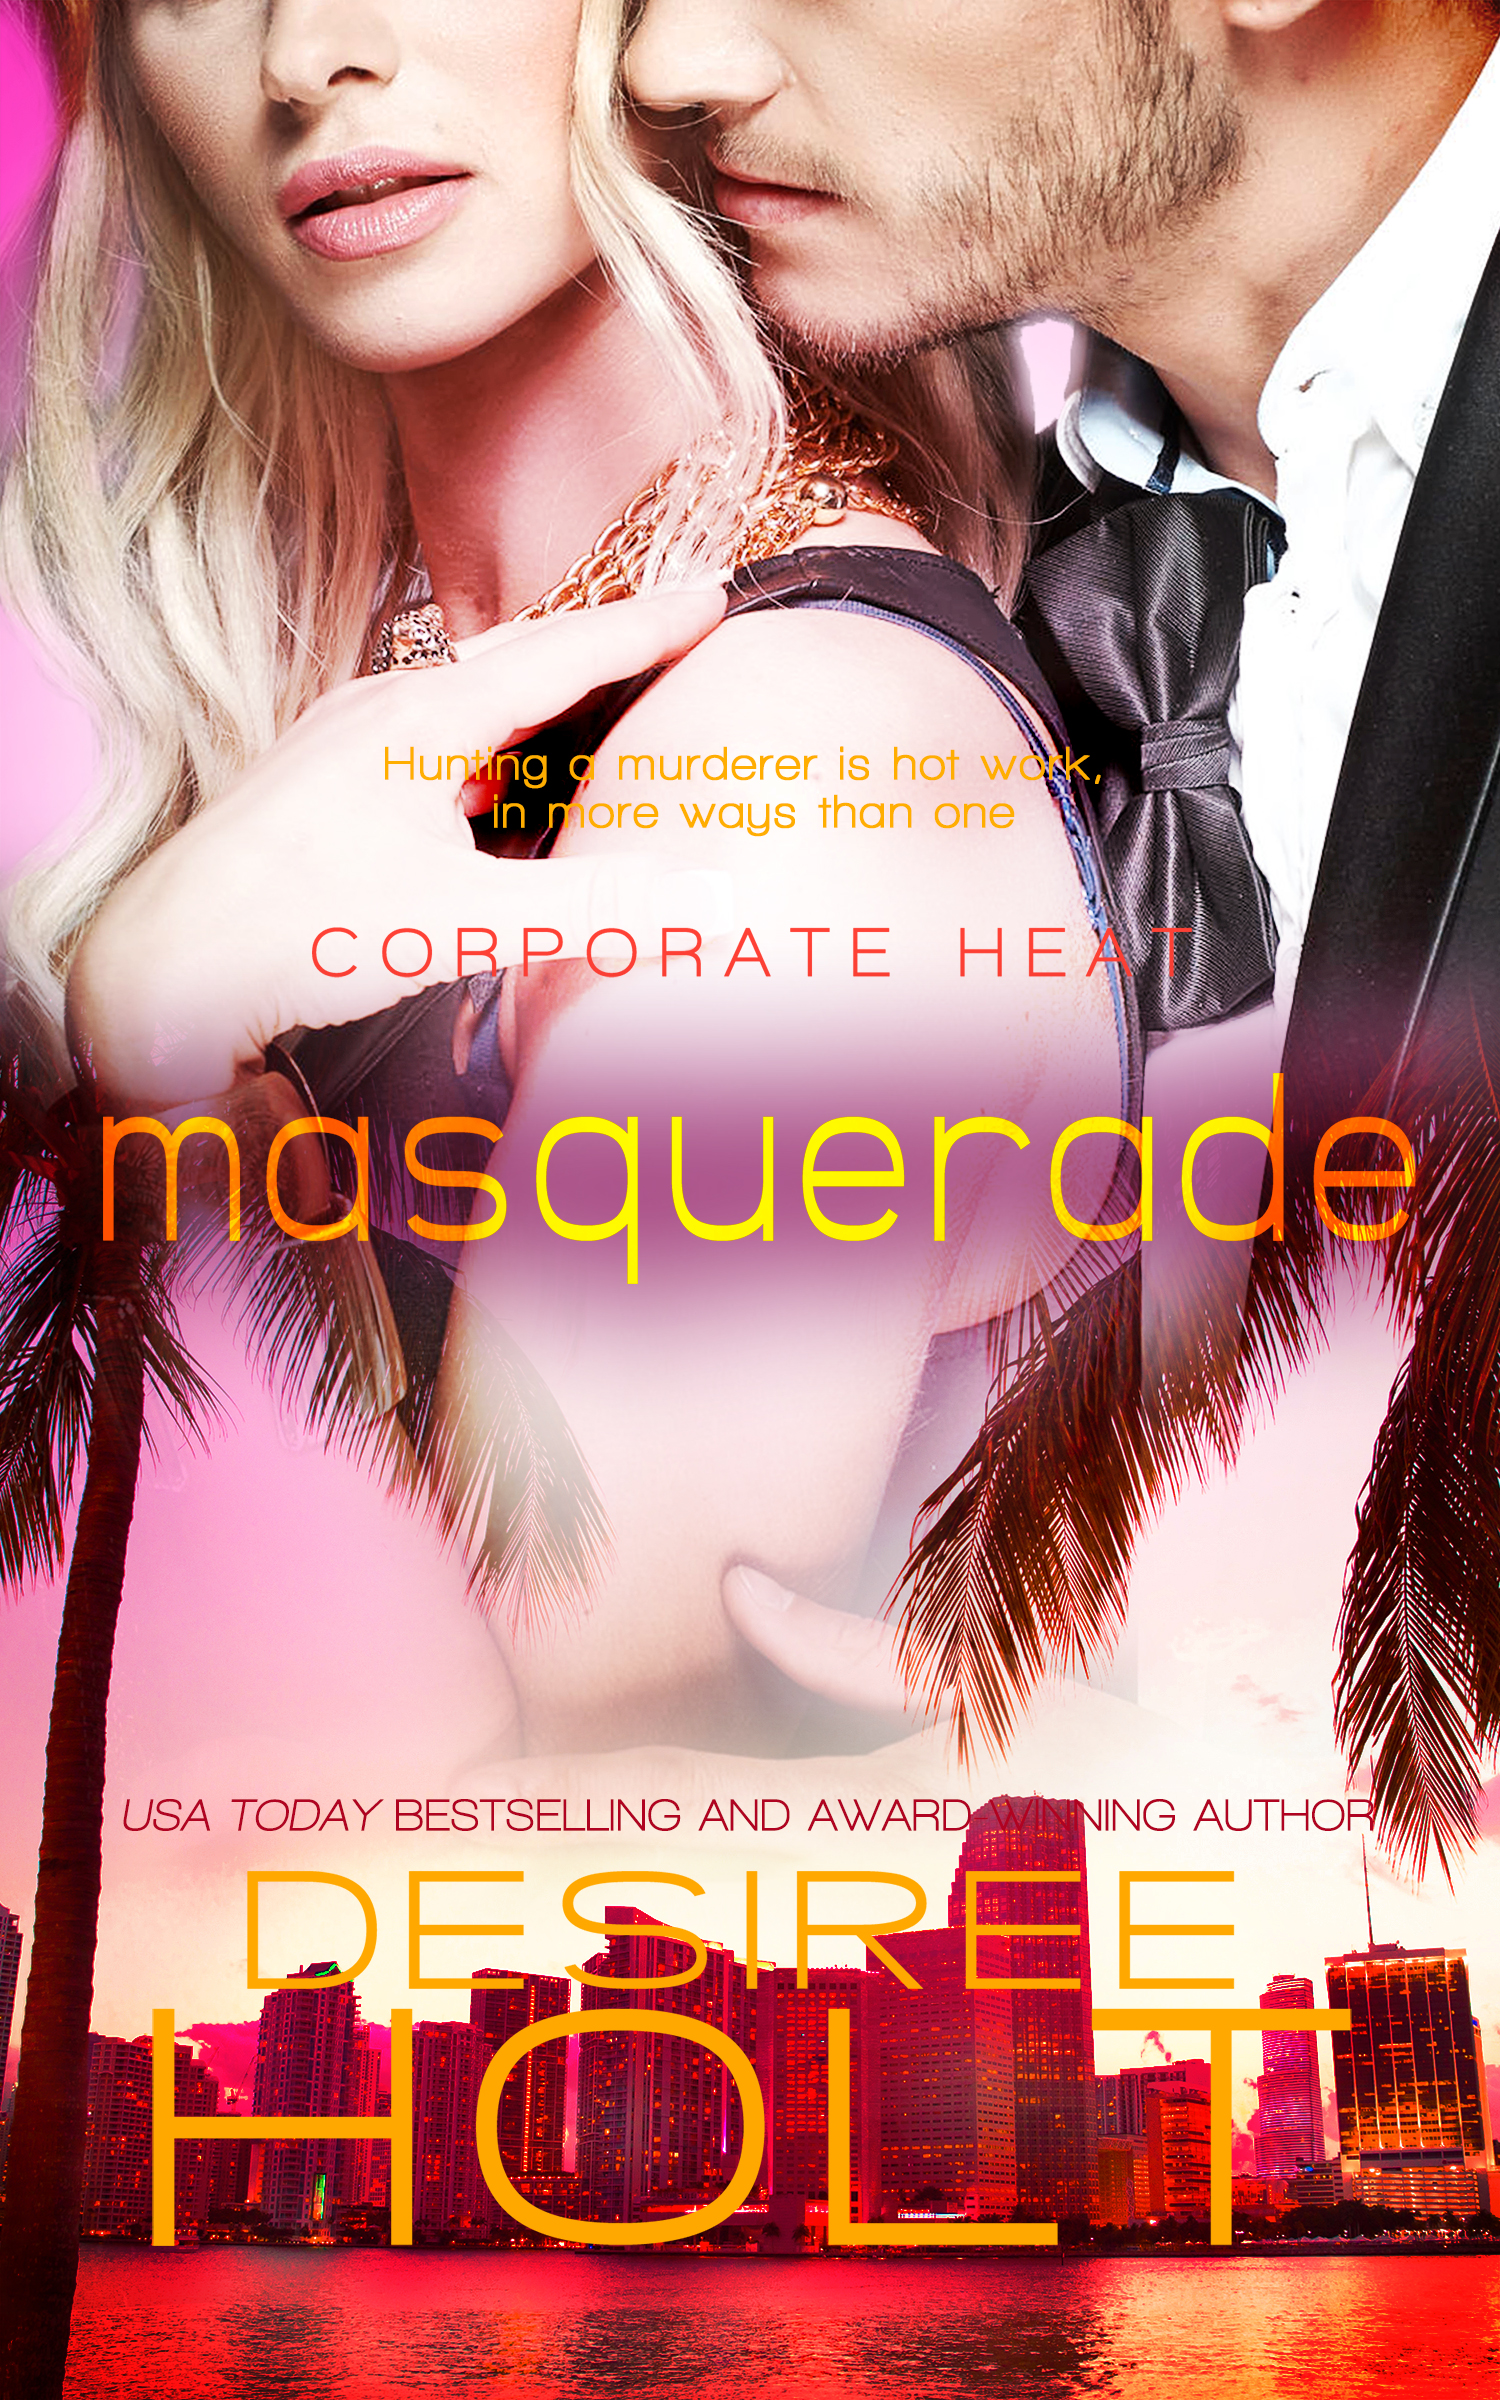 Masquerade: an action or appearance that is mere disguise or show